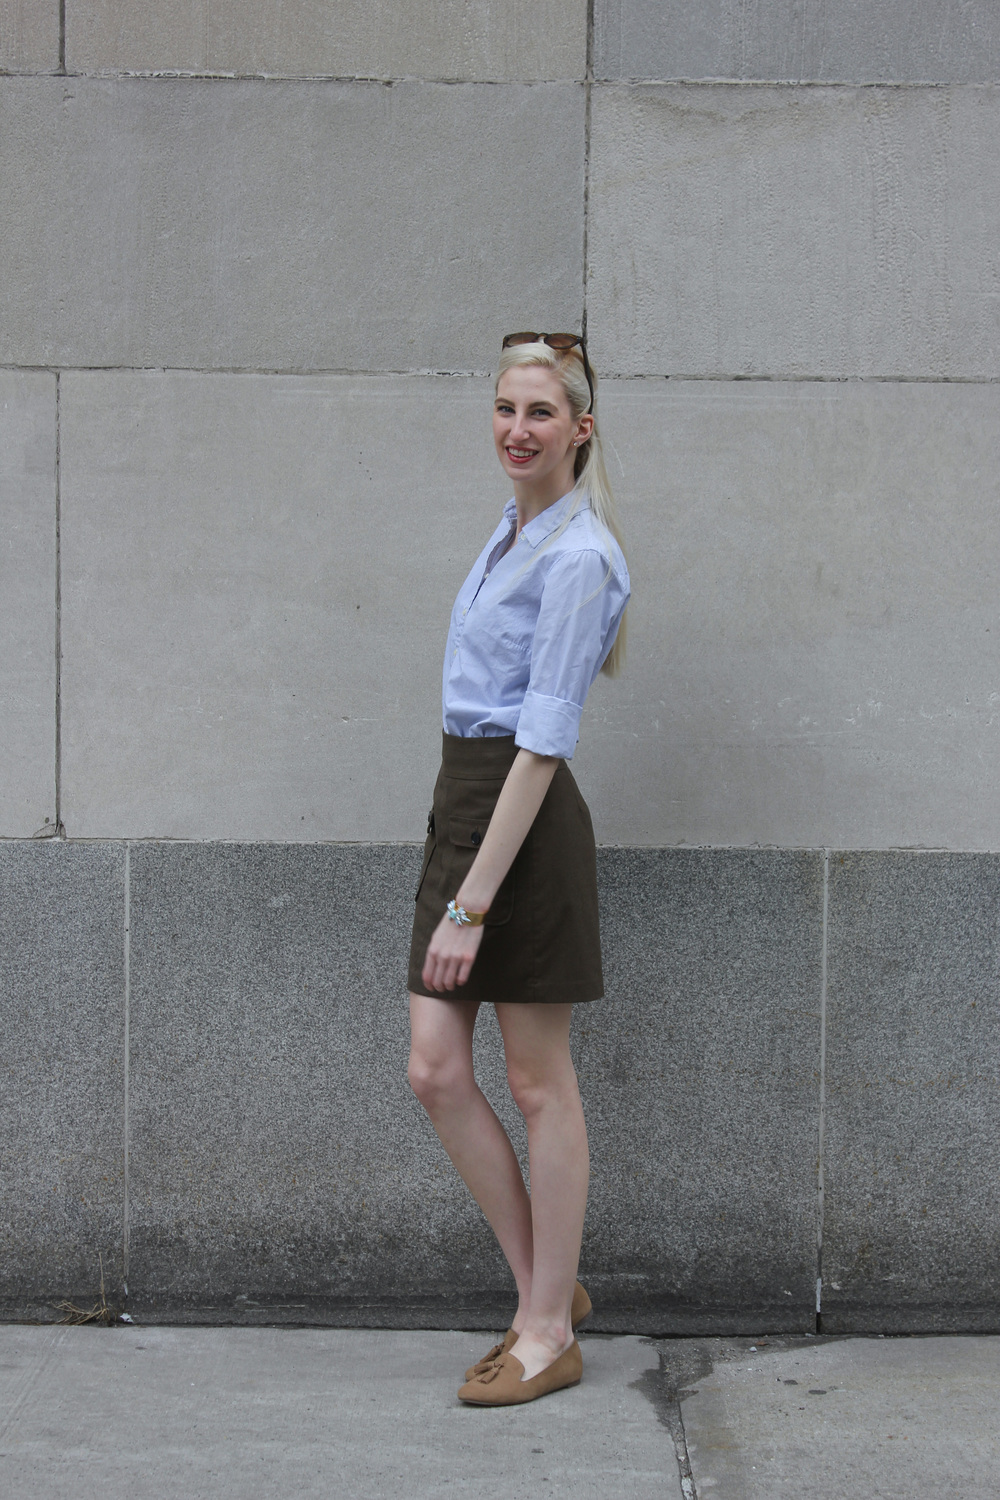 J.Crew Pinstripe Button down, LOFT green army skirt, J.Crew Factory tan Cora loafers, J.Crew Factory